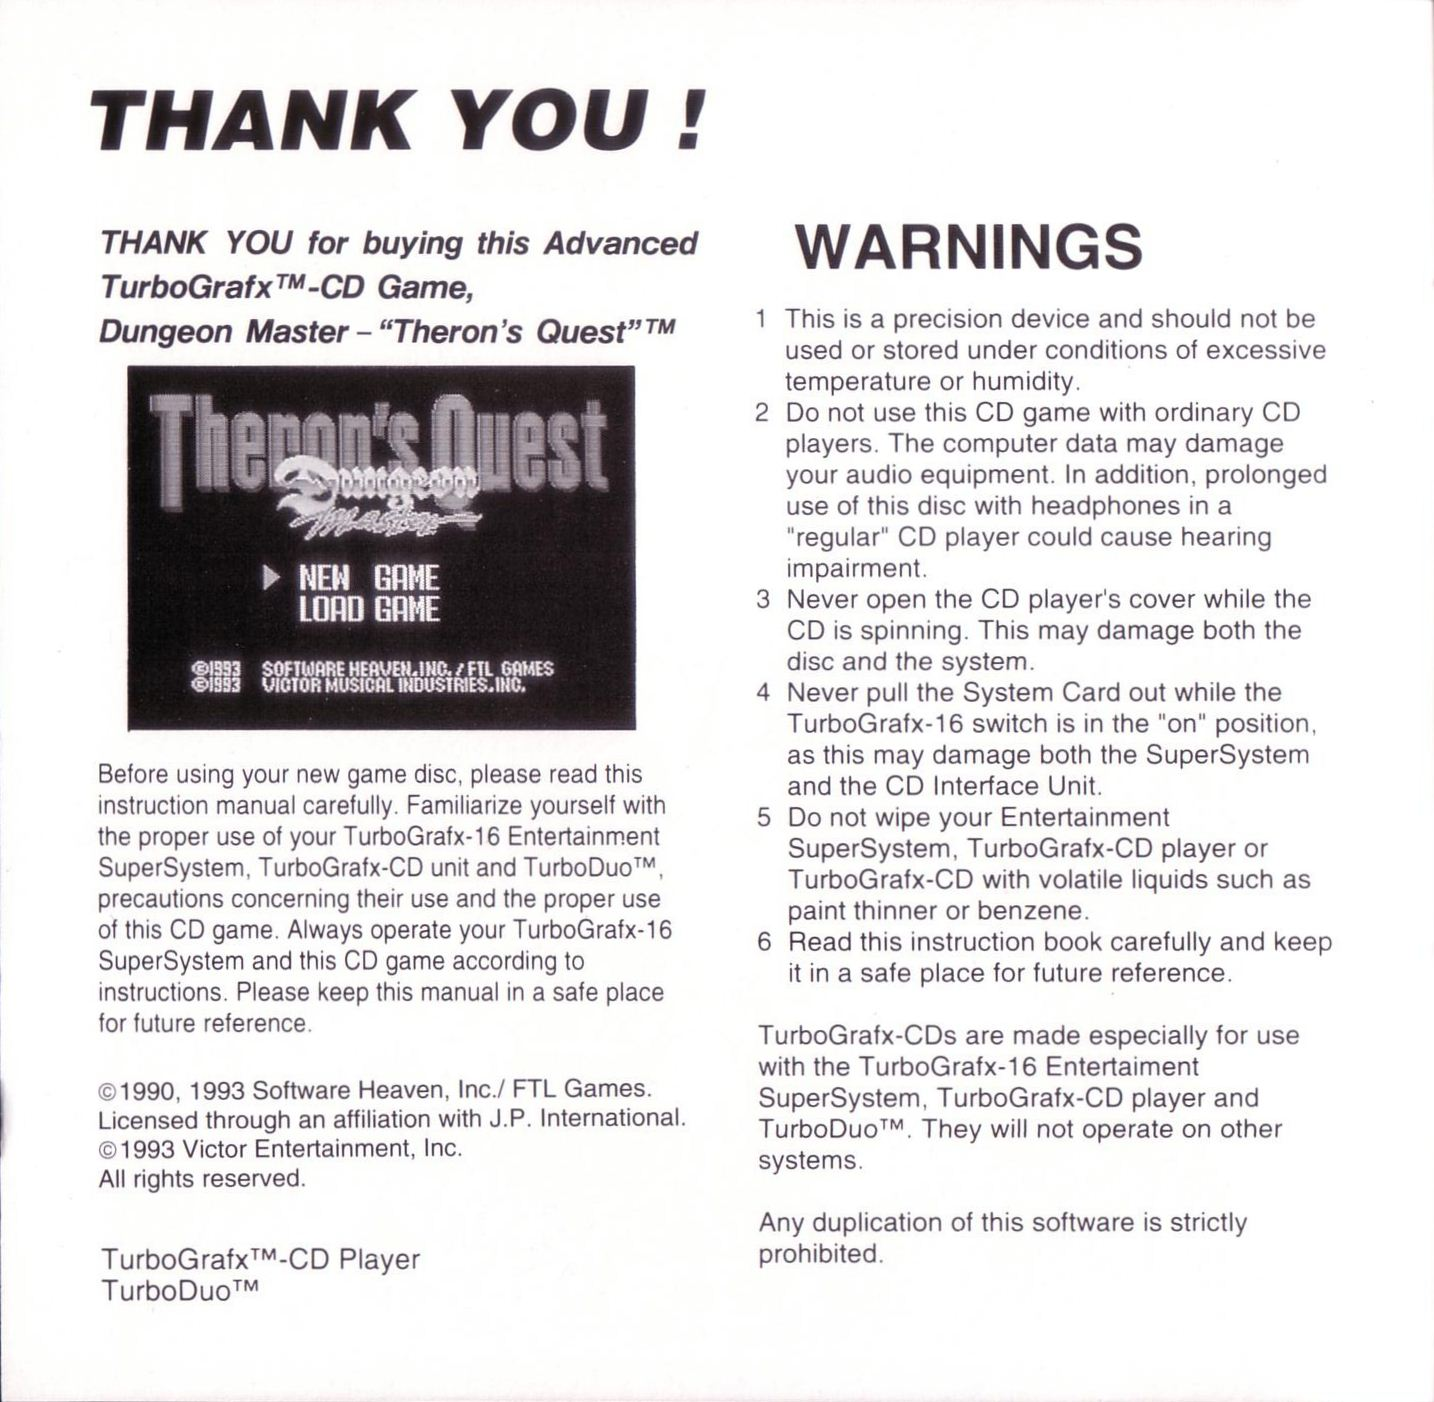 Game - Theron's Quest - US - Turbografx - Booklet - Page 002 - Scan